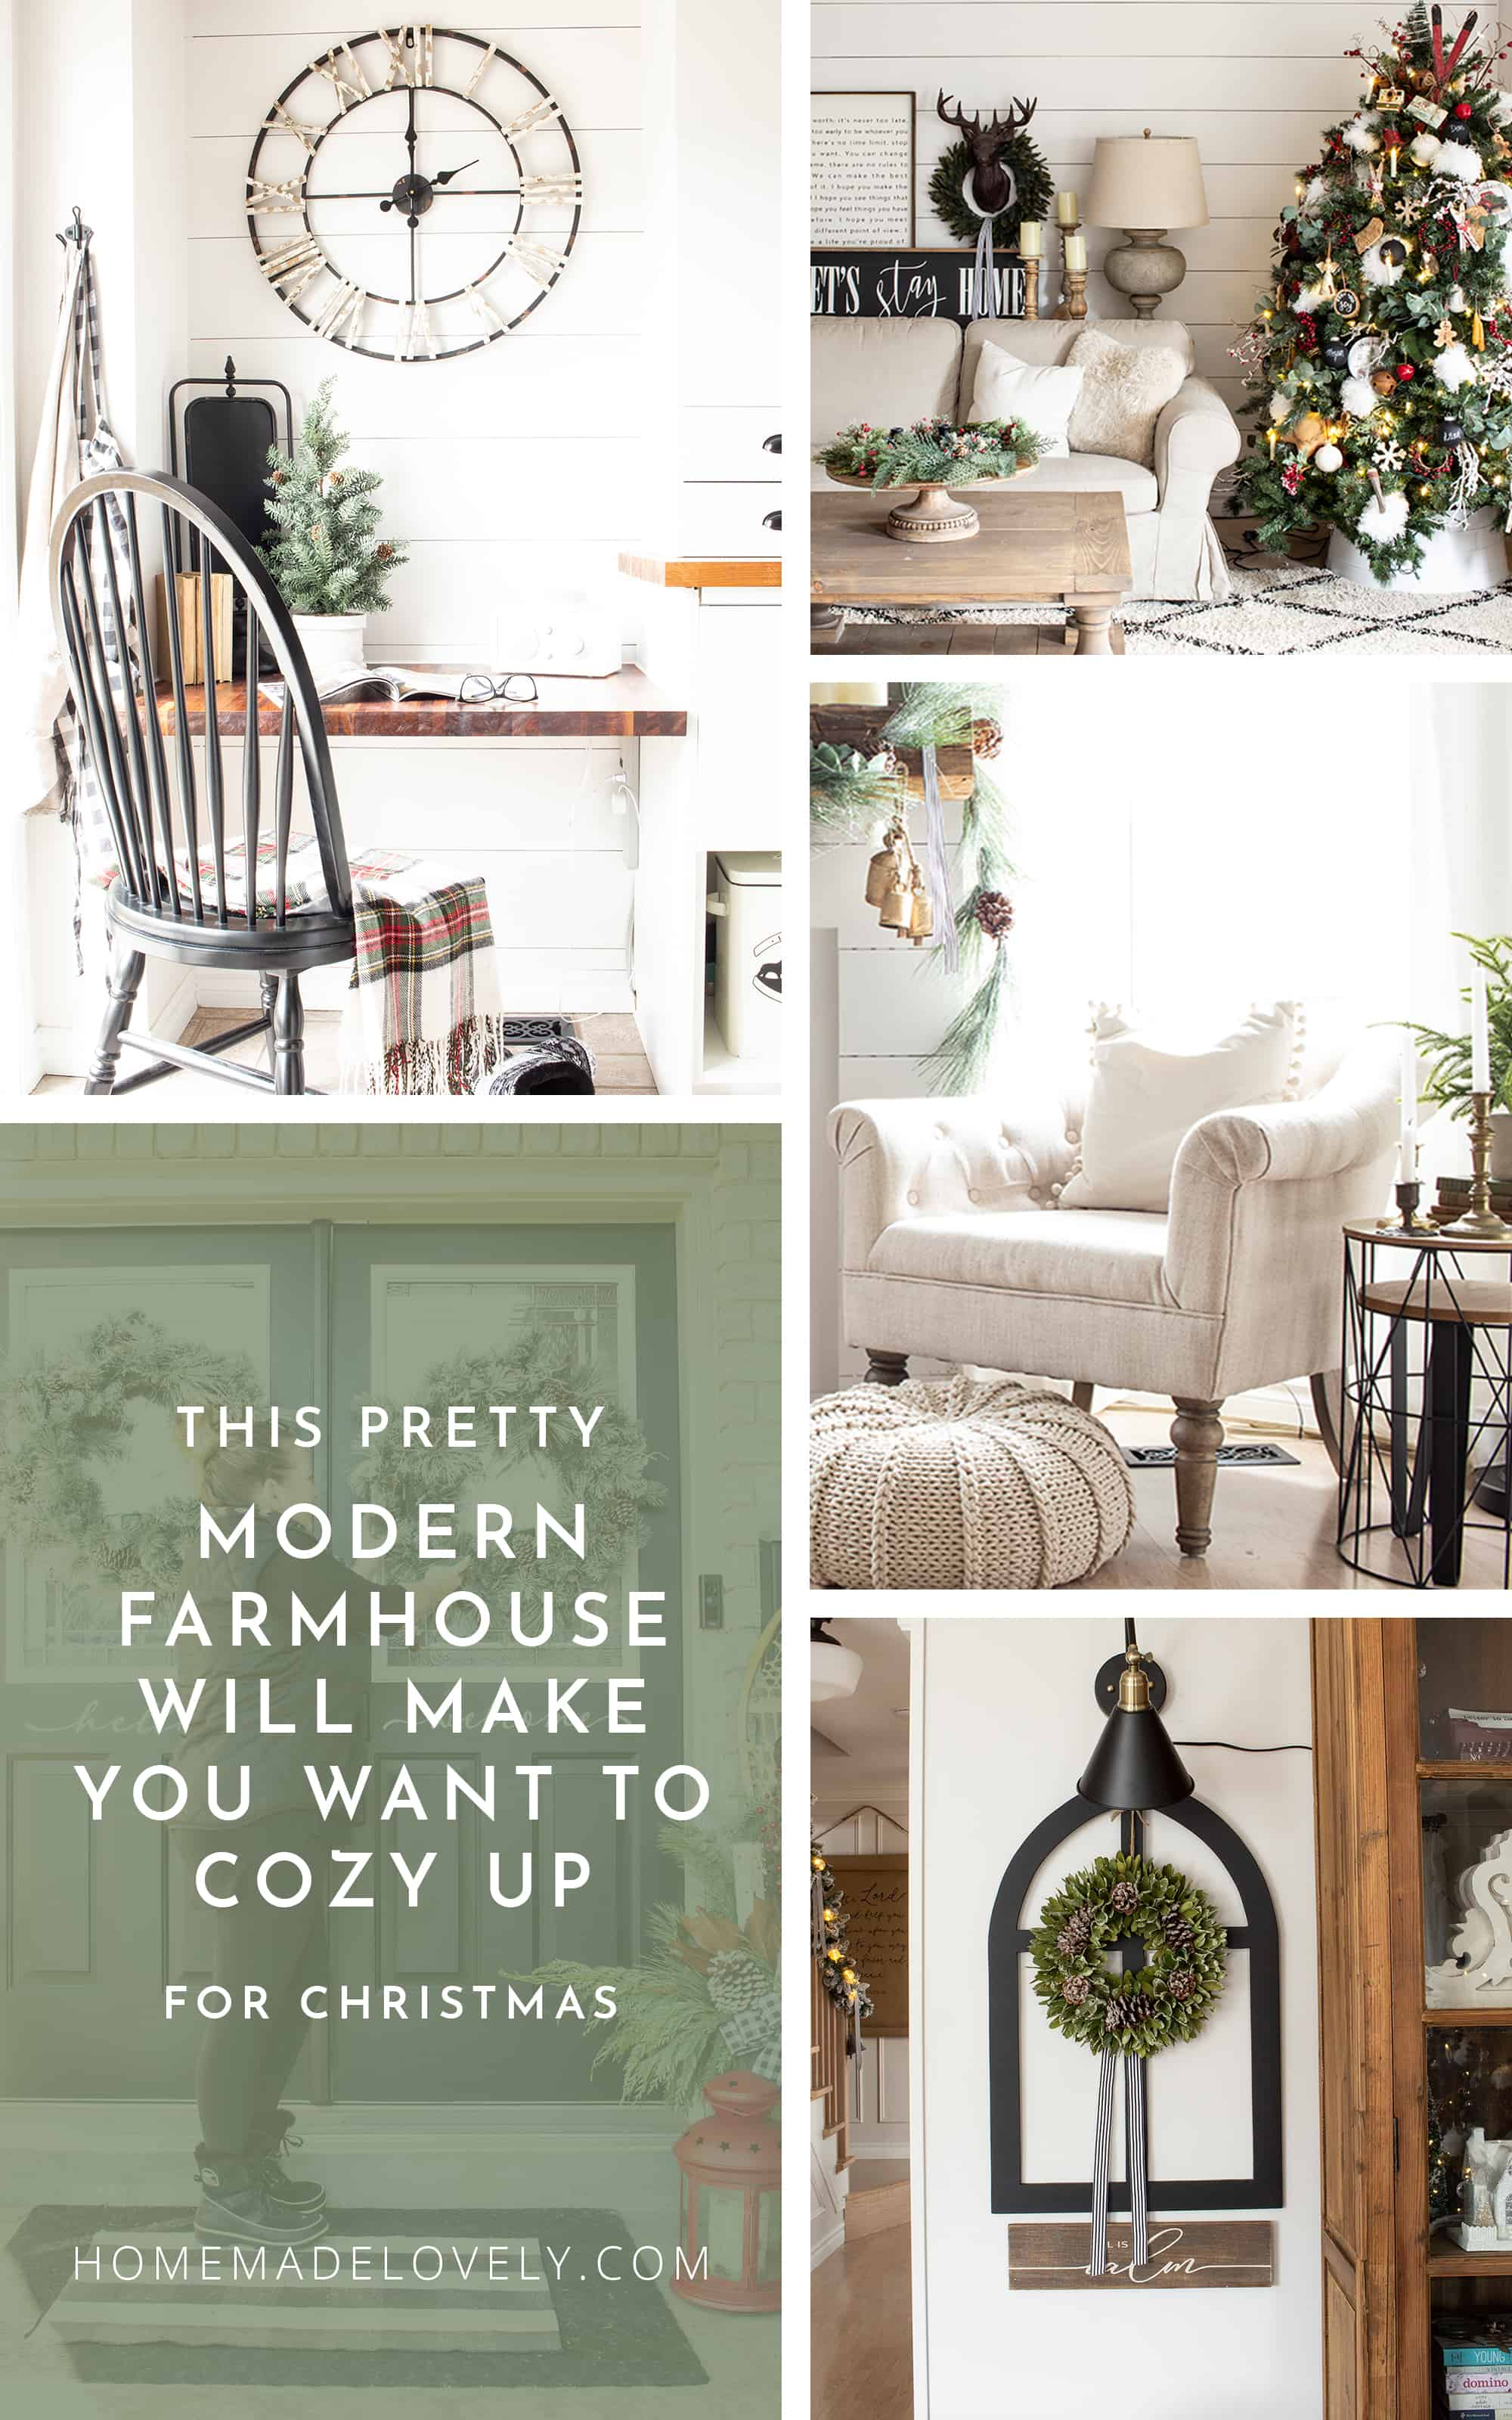 Our Pretty Modern Farmhouse Will Make You Want to Cozy Up for Christmas